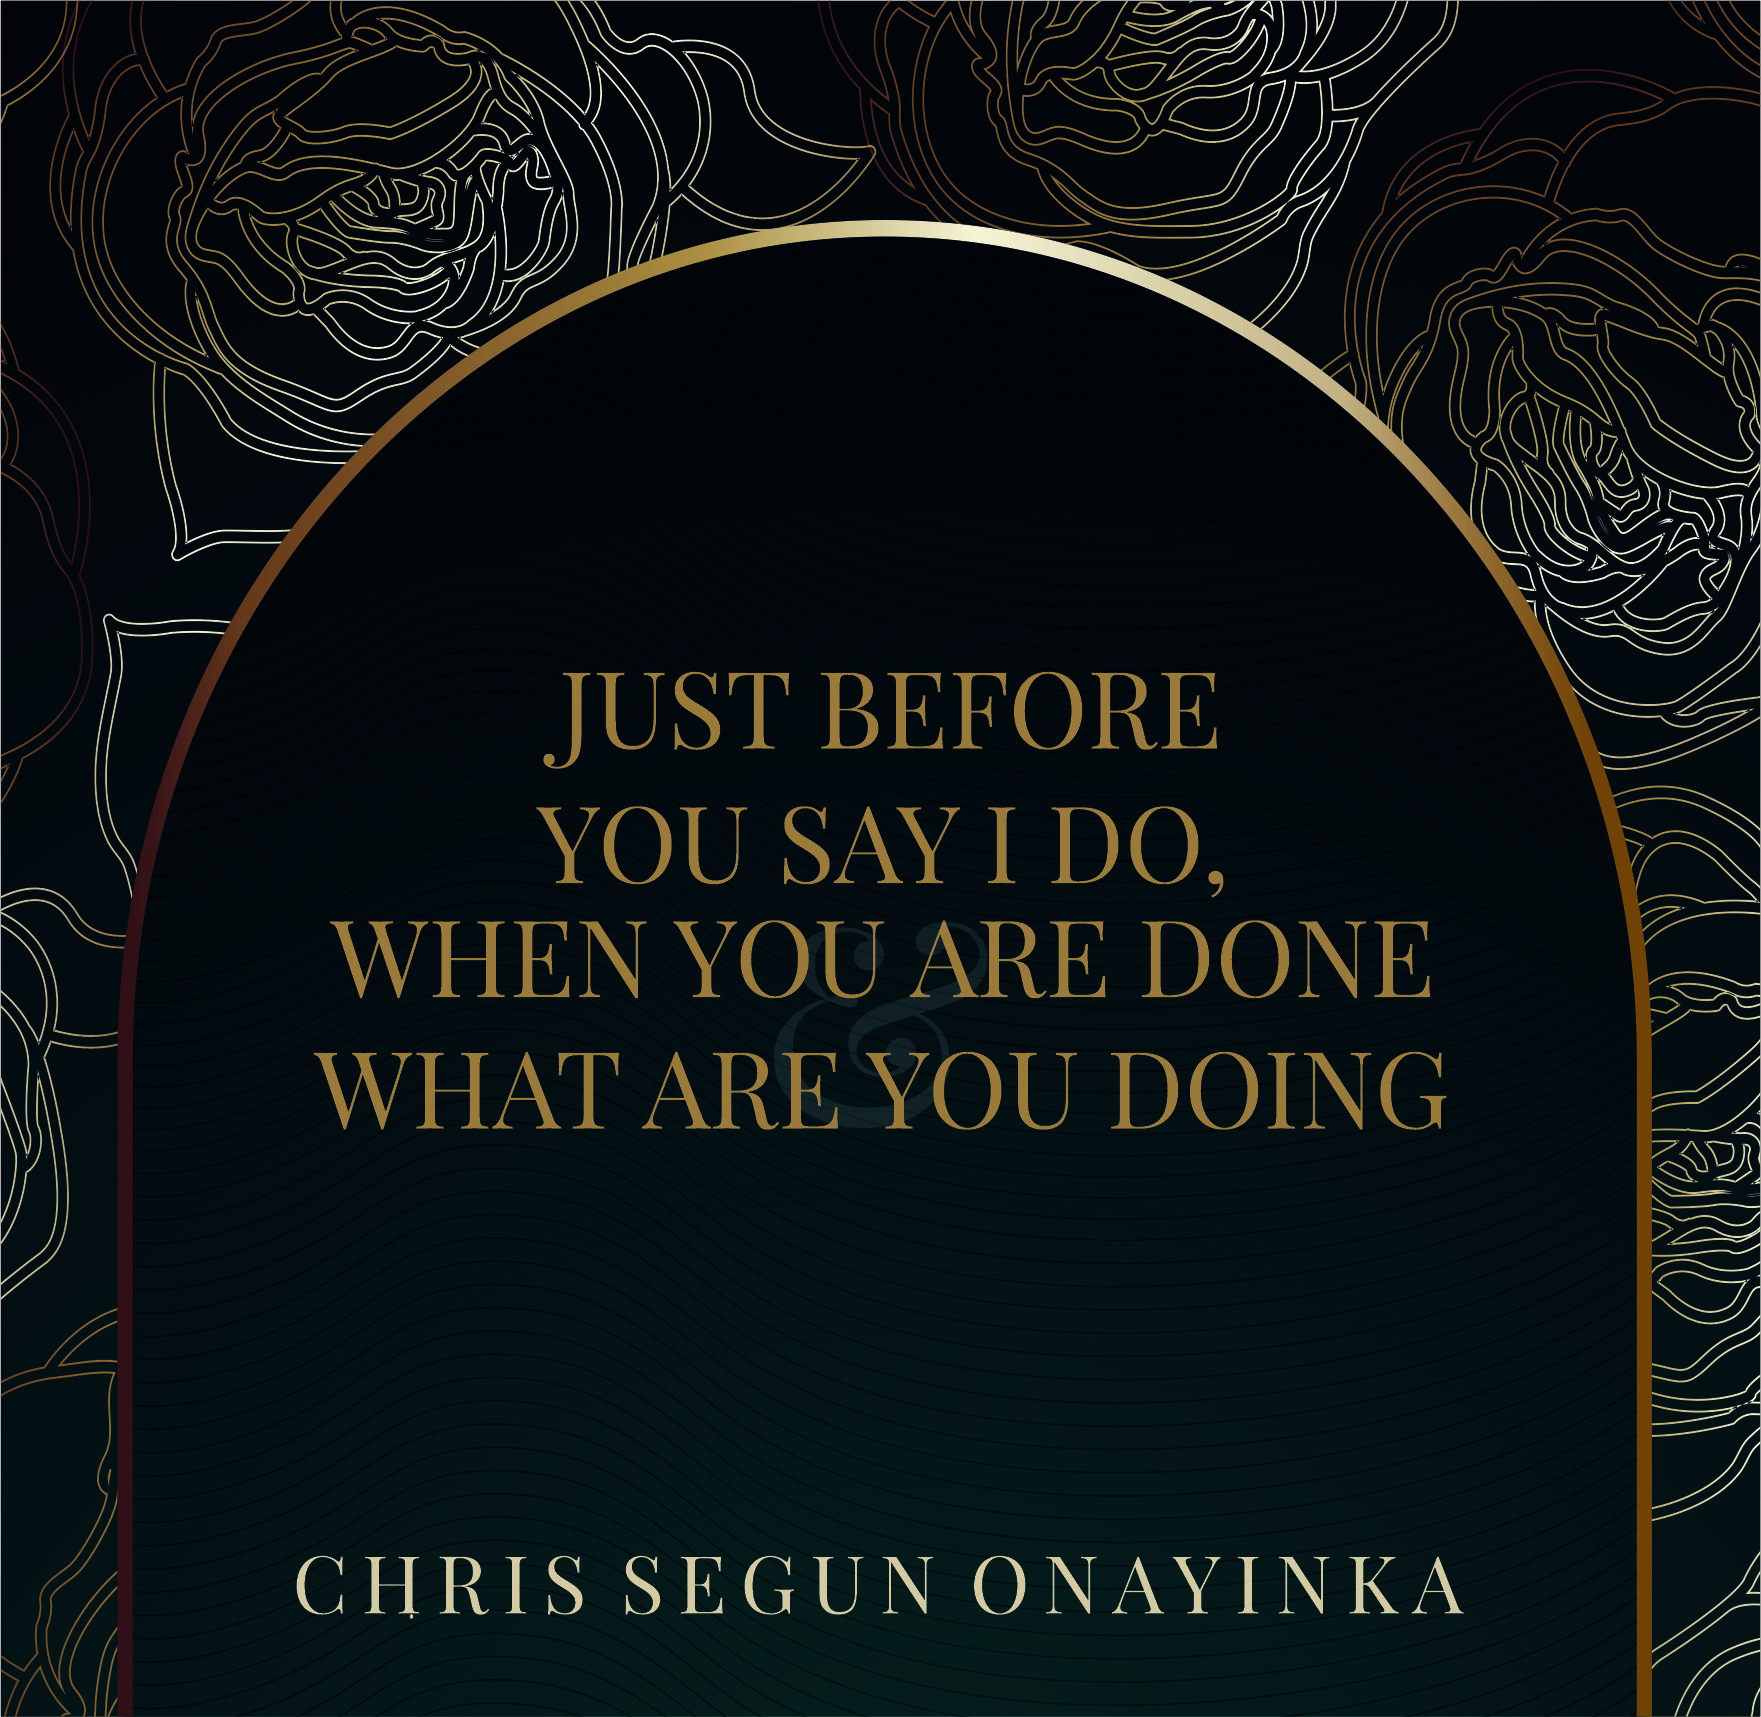 Just before you say i do, when you are done and what are you doing